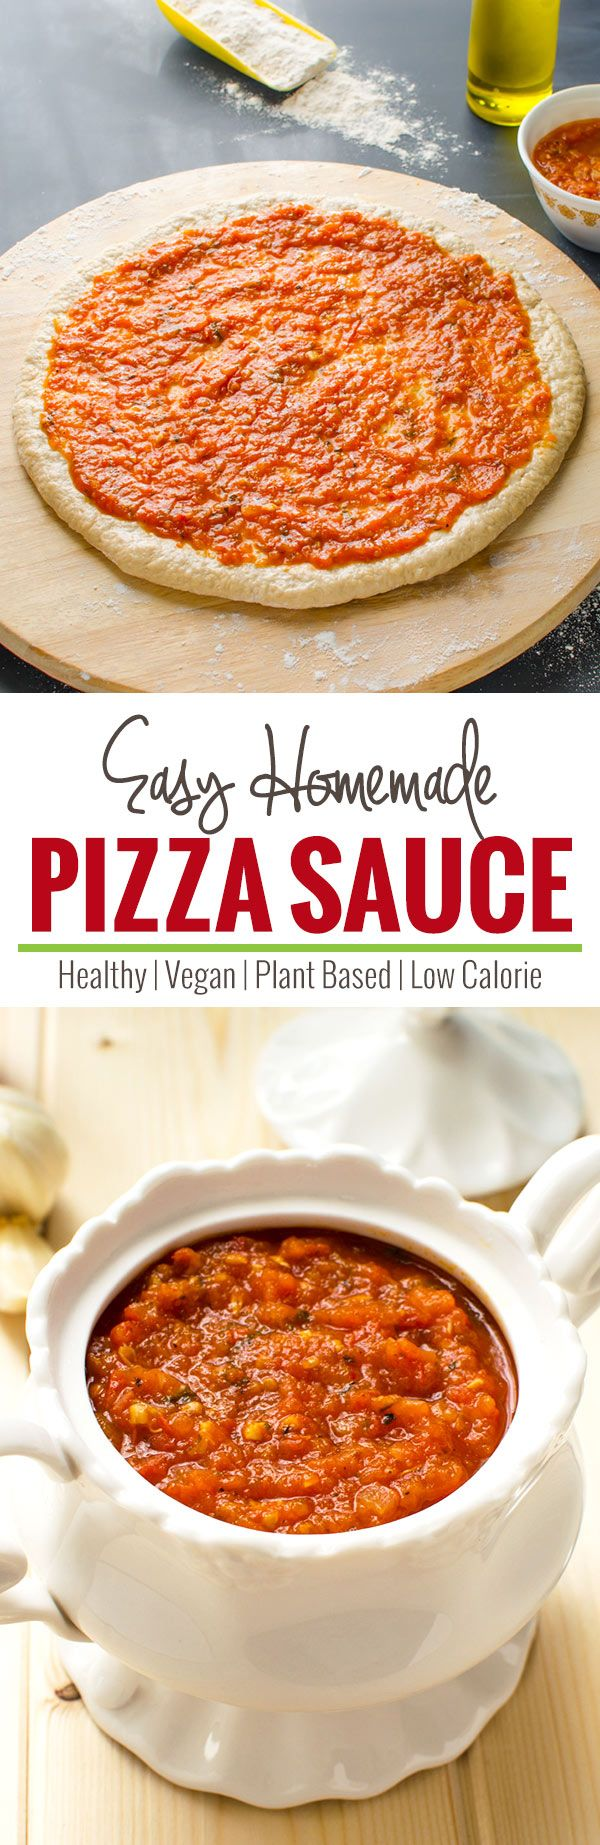 Easy homemade pizza sauce --This sauce is made from fresh tomatoes and fresh spices to get ultimate fresh flavors and taste.   watchwhatueat.com